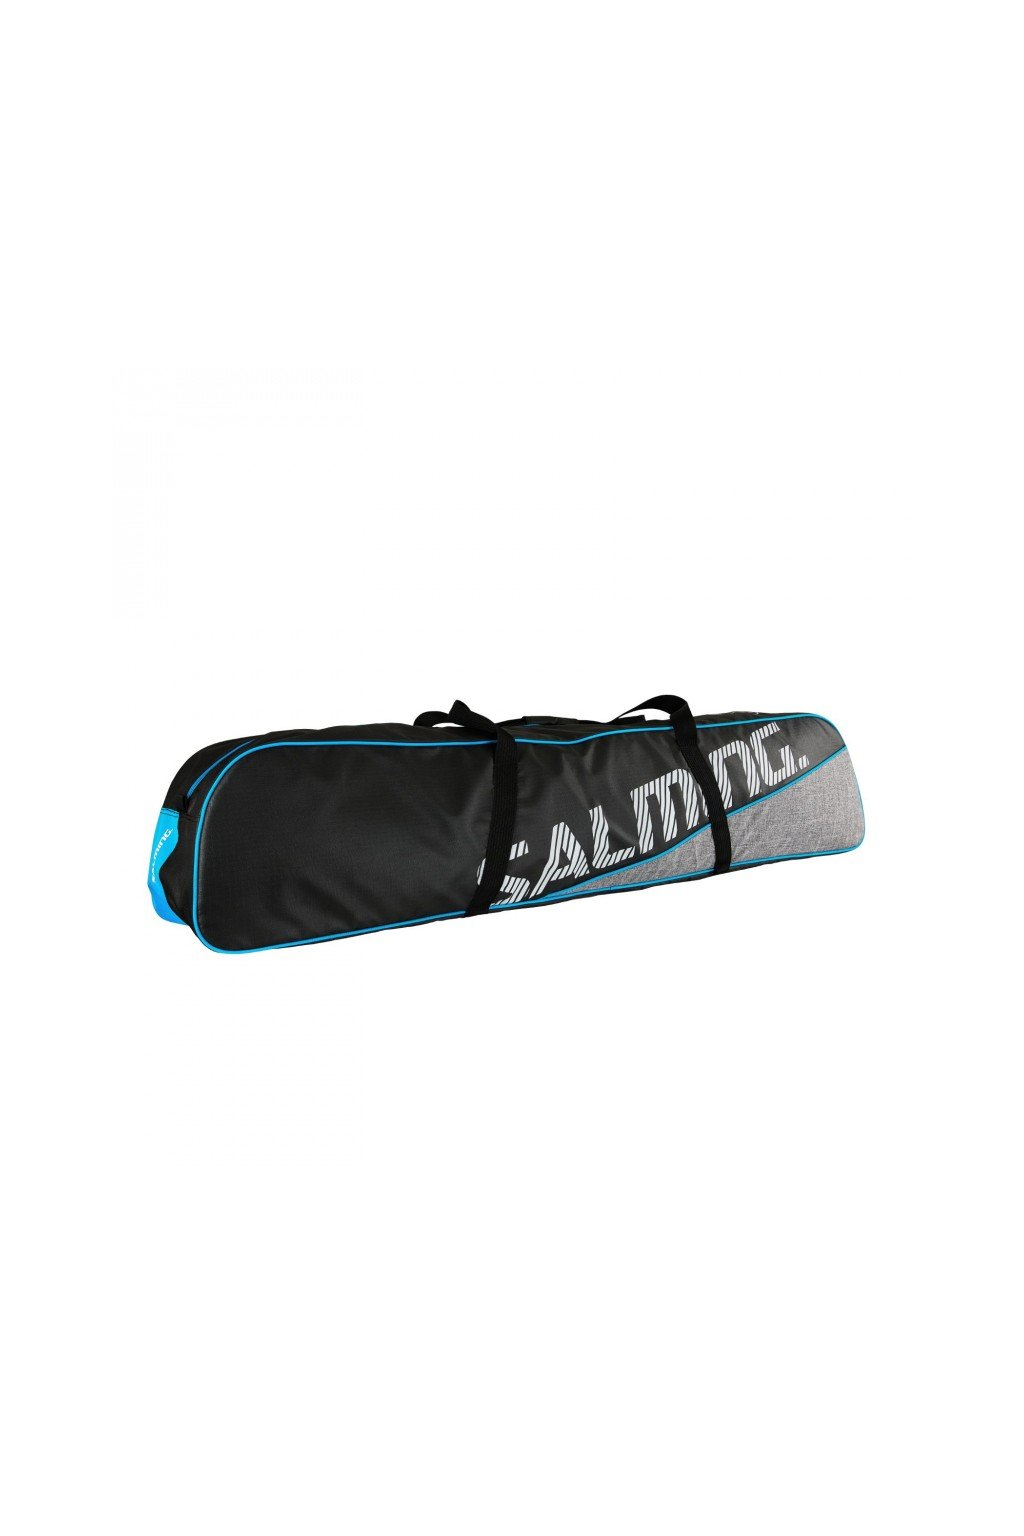 salming pro tour toolbag jr black grey